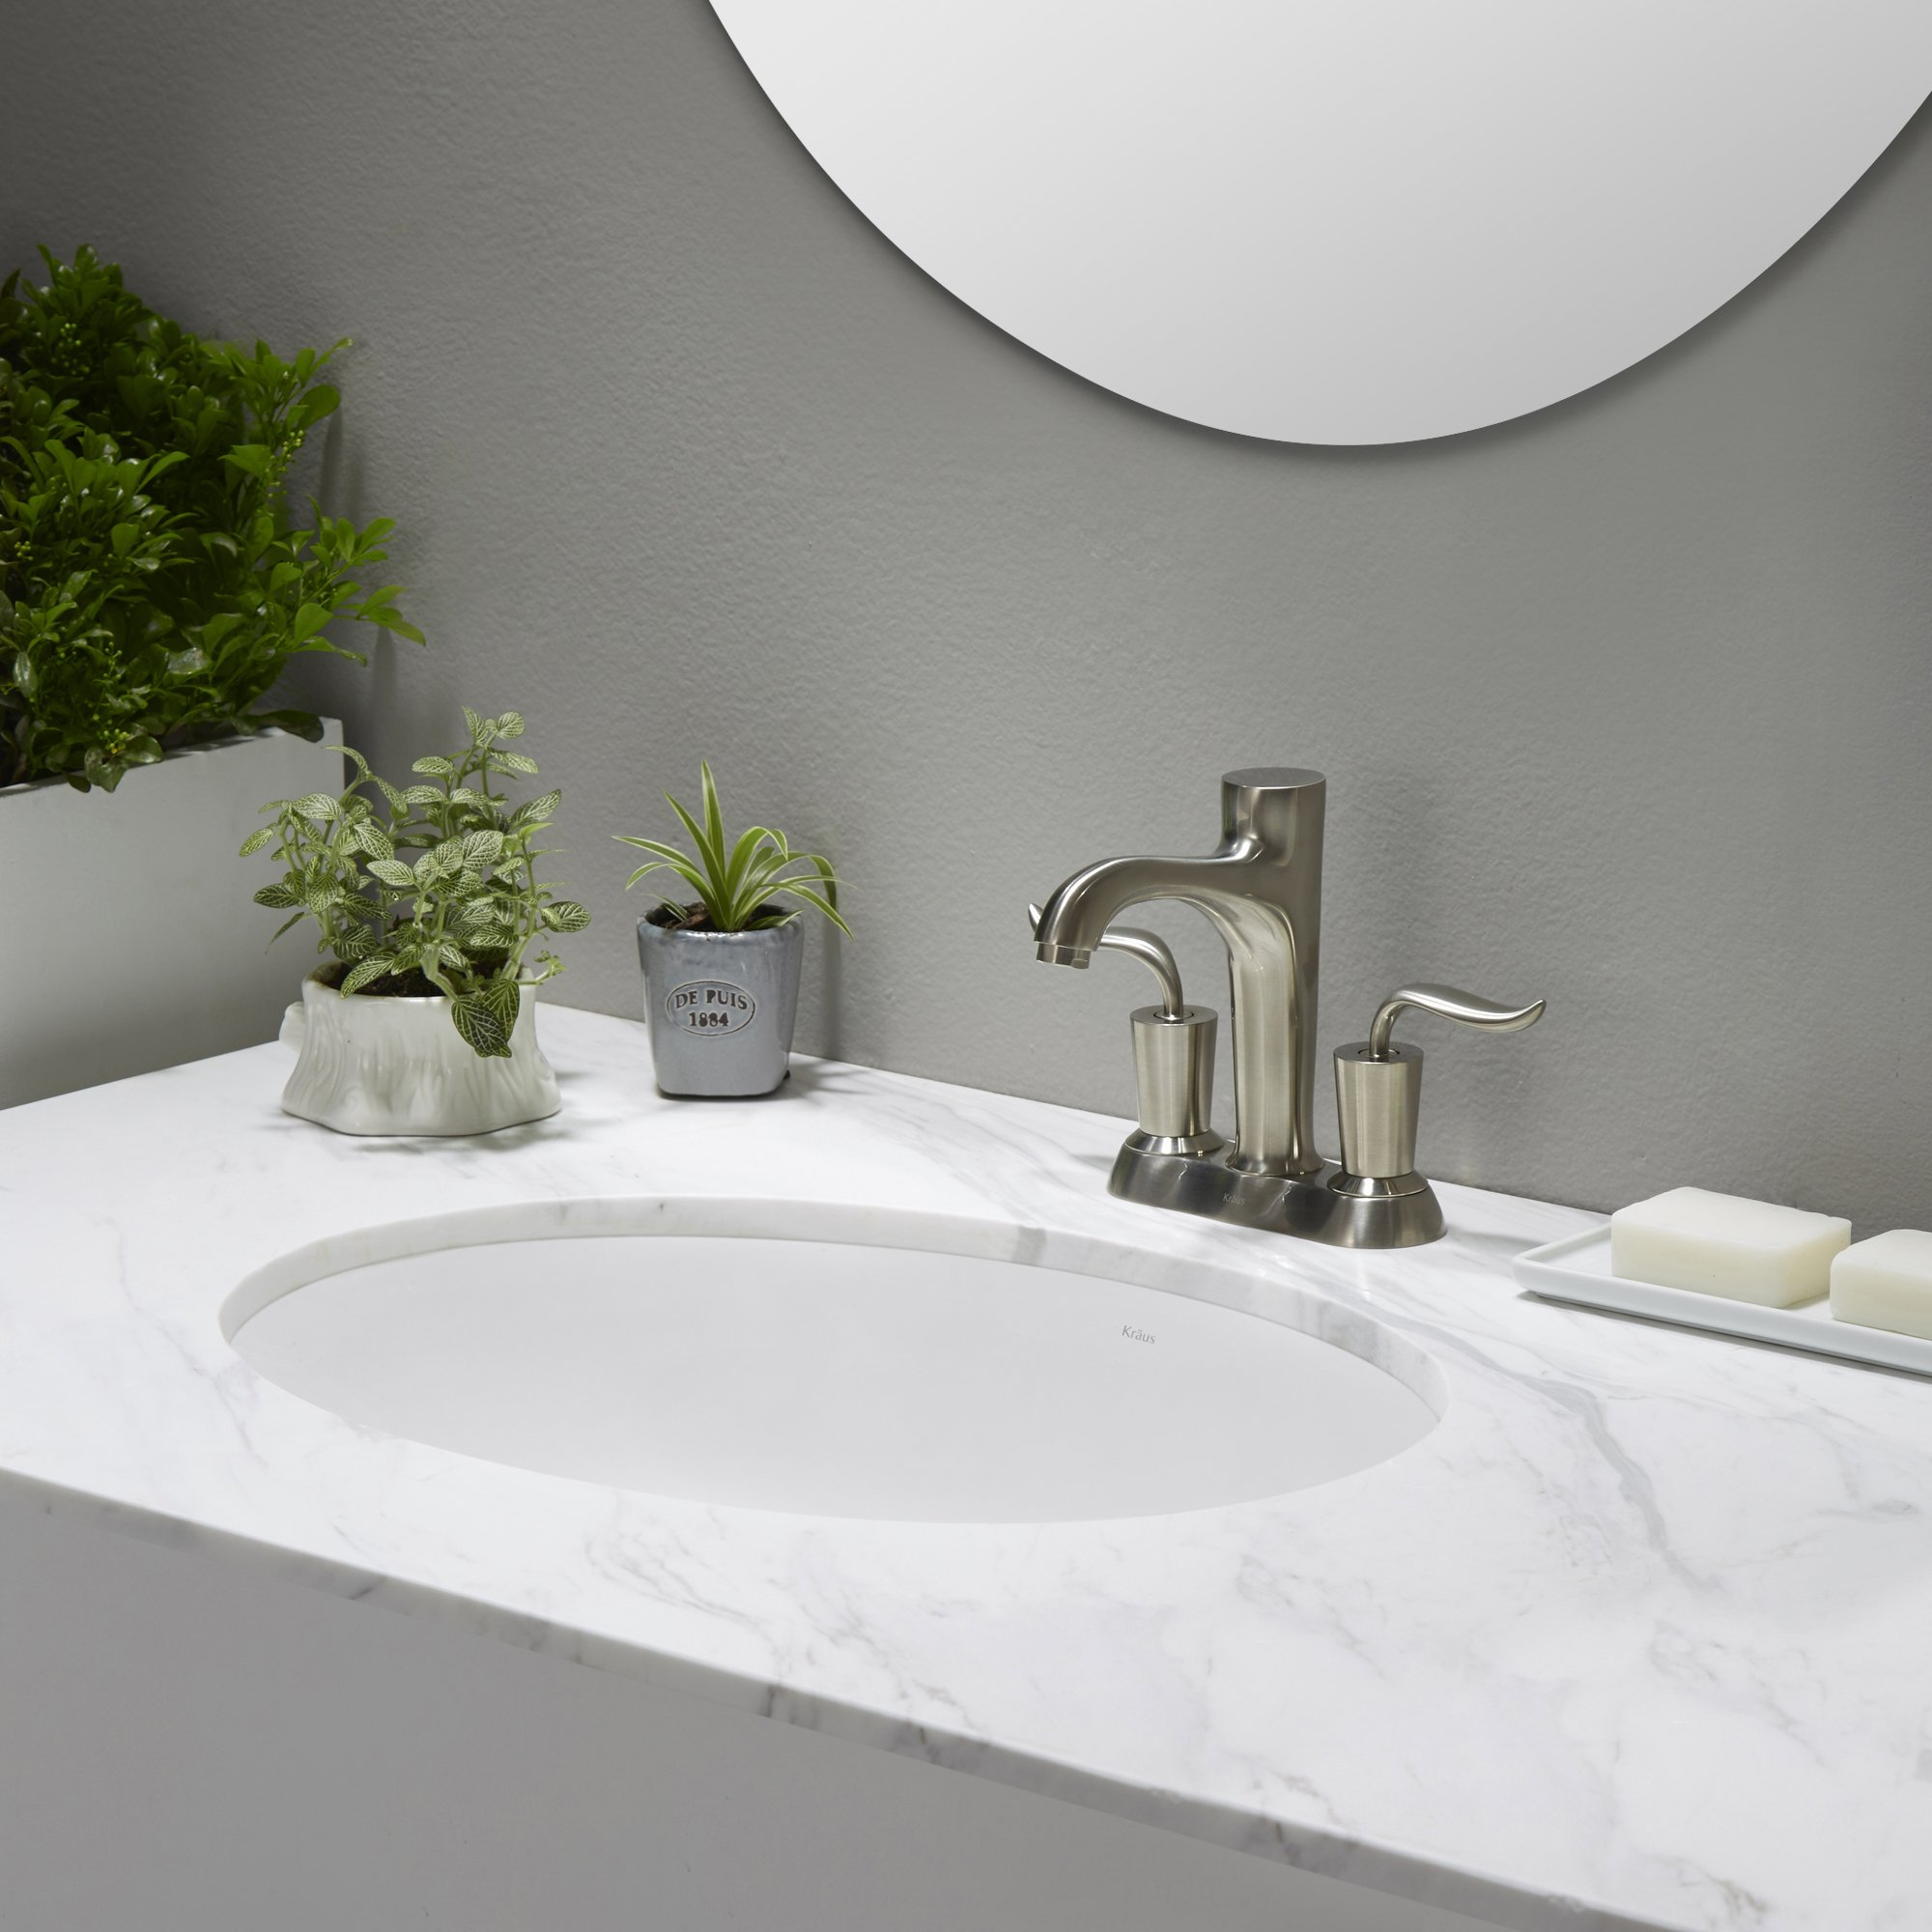 KRAUS Elavo 17 Inch Oval Undermount Porcelain Ceramic Bathroom Sink in White with Overflow, KCU-211 by Kraus (Image #13)